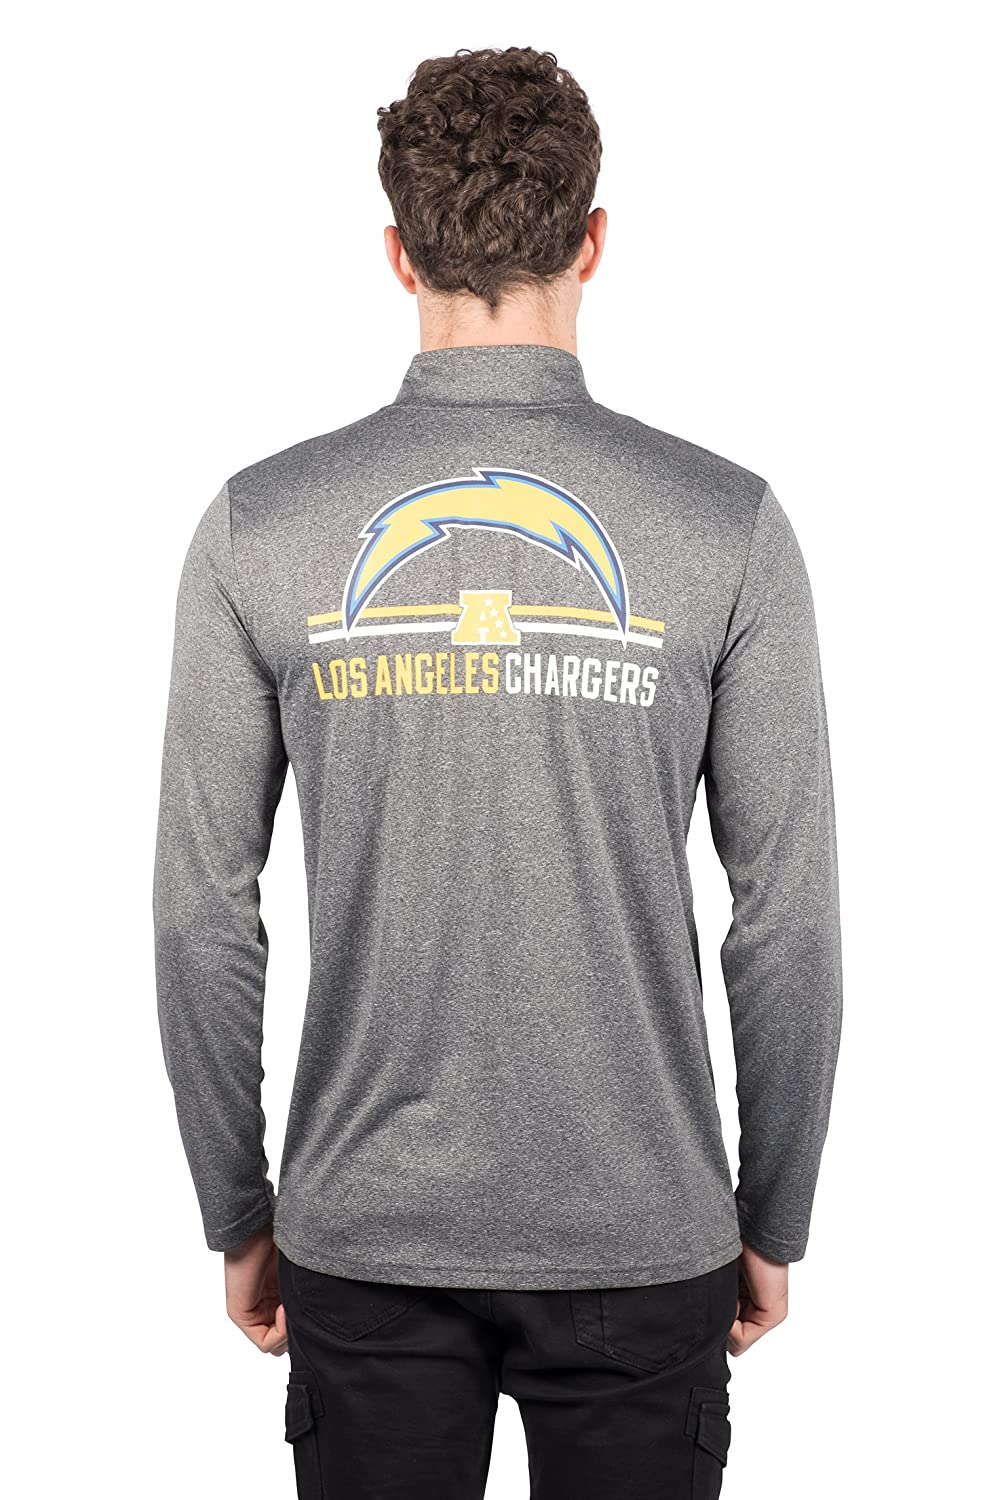 b18b22fd Ultra Game NFL Los Angeles Chargers Men's Quarter Zip Pullover Athletic  Quick Dry Long Sleeve Tee Shirt, Heather Charcoal, Medium